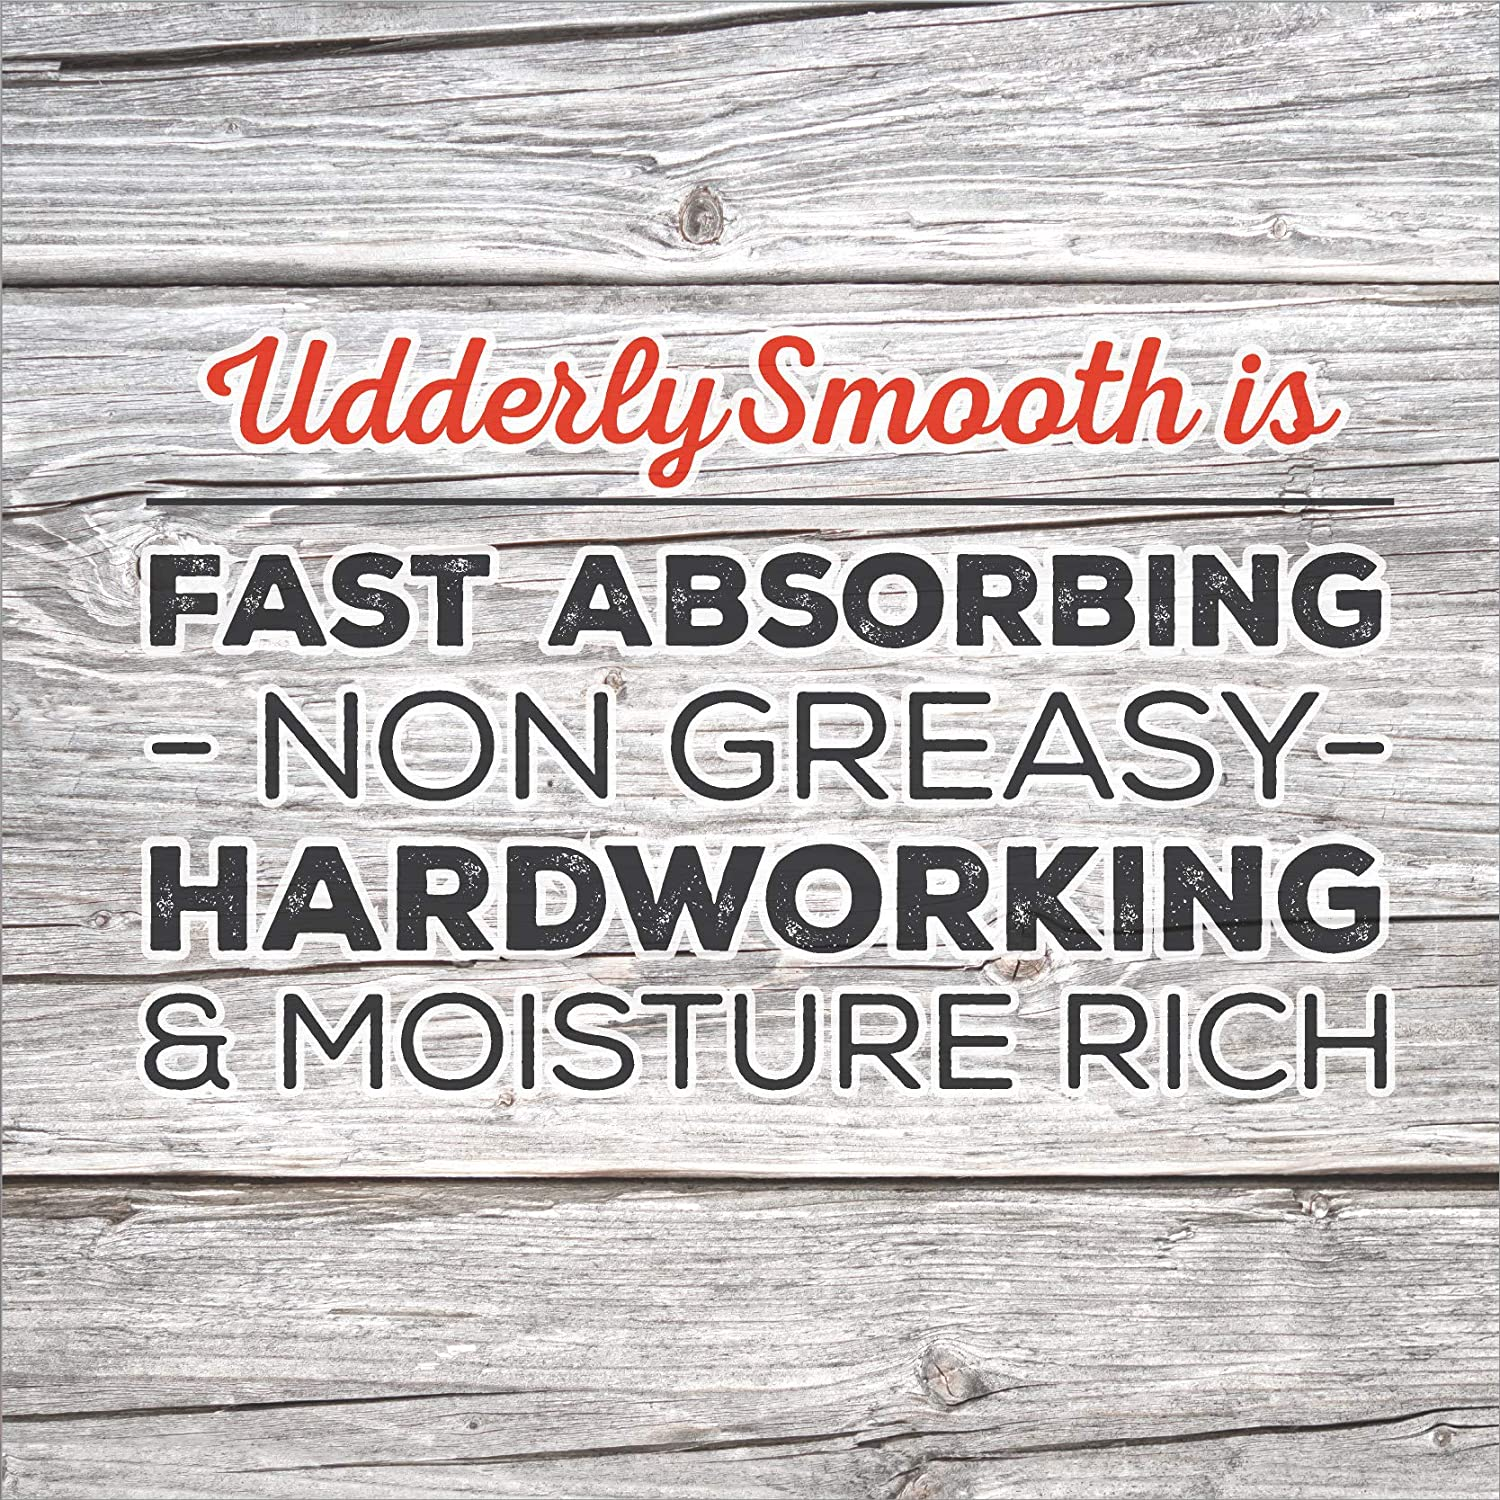 Amazon Com Udderly Smooth Extra Care 20 Hand Body Cream With 20 Urea Unscented Ultra Moisturizing Cream 8 Ounce Health Personal Care